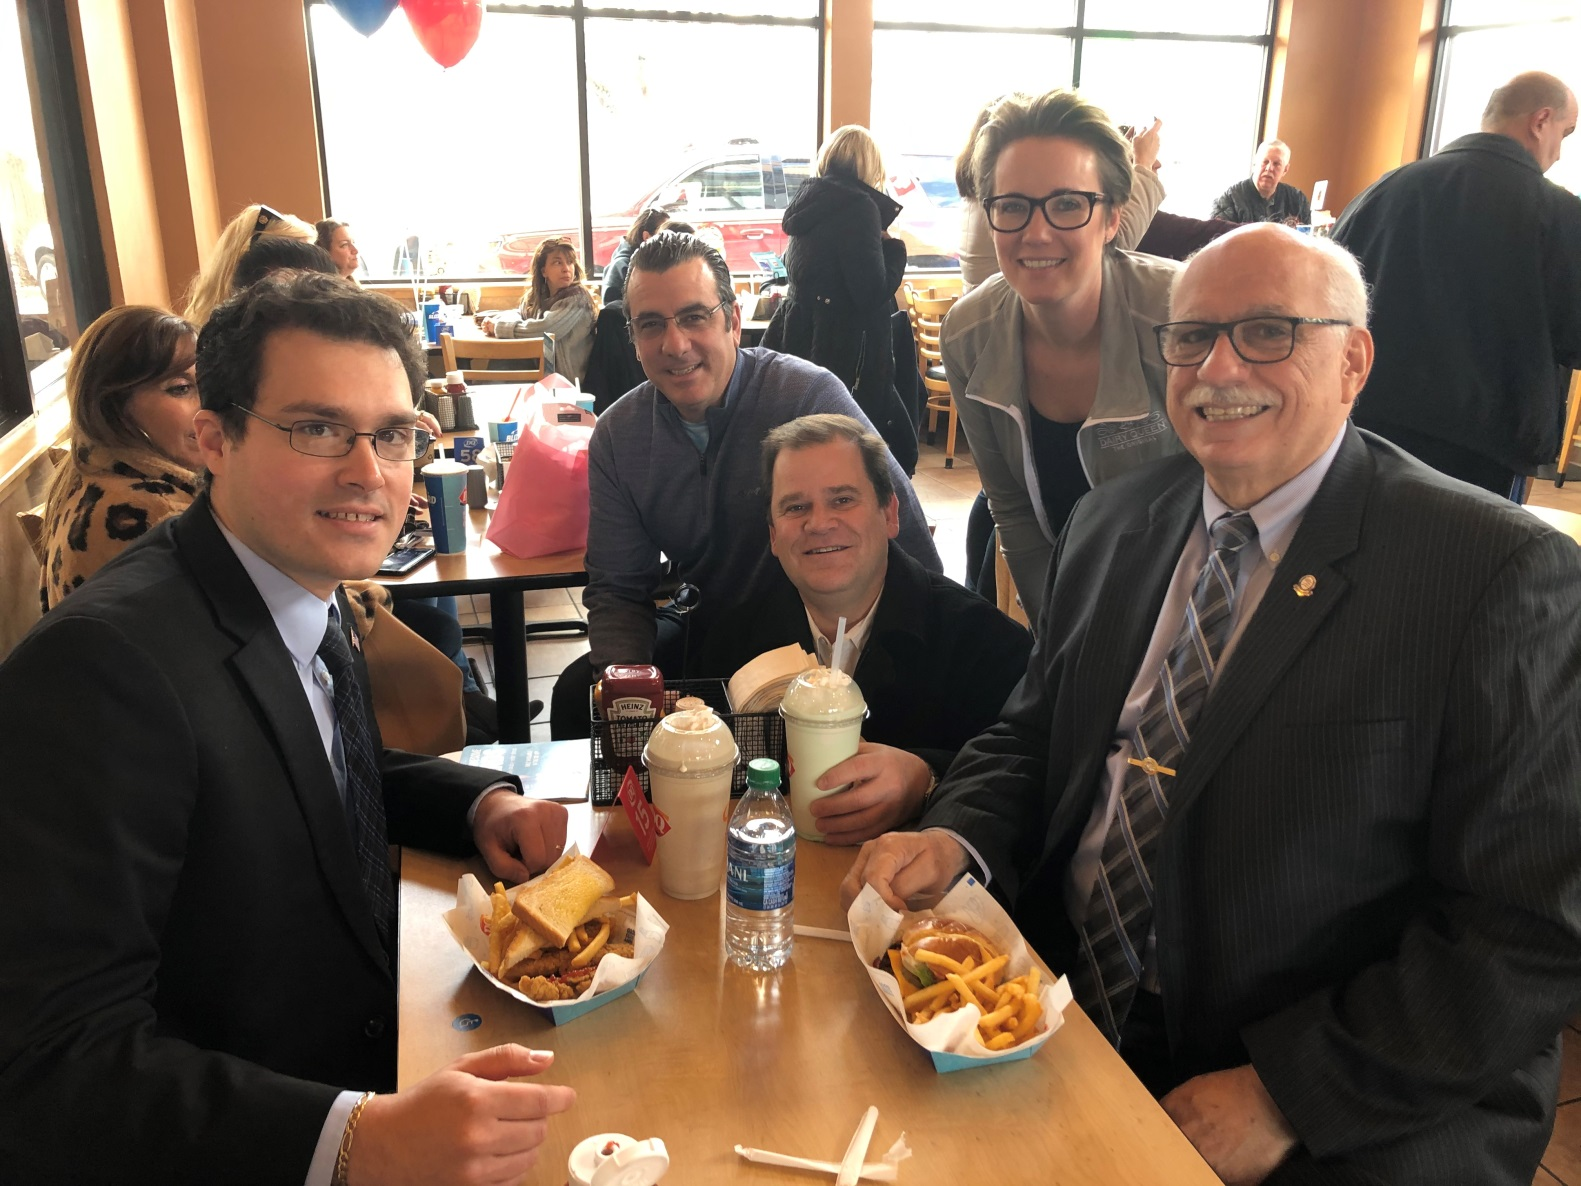 Assemblyman John Mikulin (R,C,I-Bethpage) joined (from left to right) Councilman Dennis Dunne, Jeff Pravato, receiver of taxes, Councilwoman Laura Maier and Dennis McGrath at the North Massapequa Fire